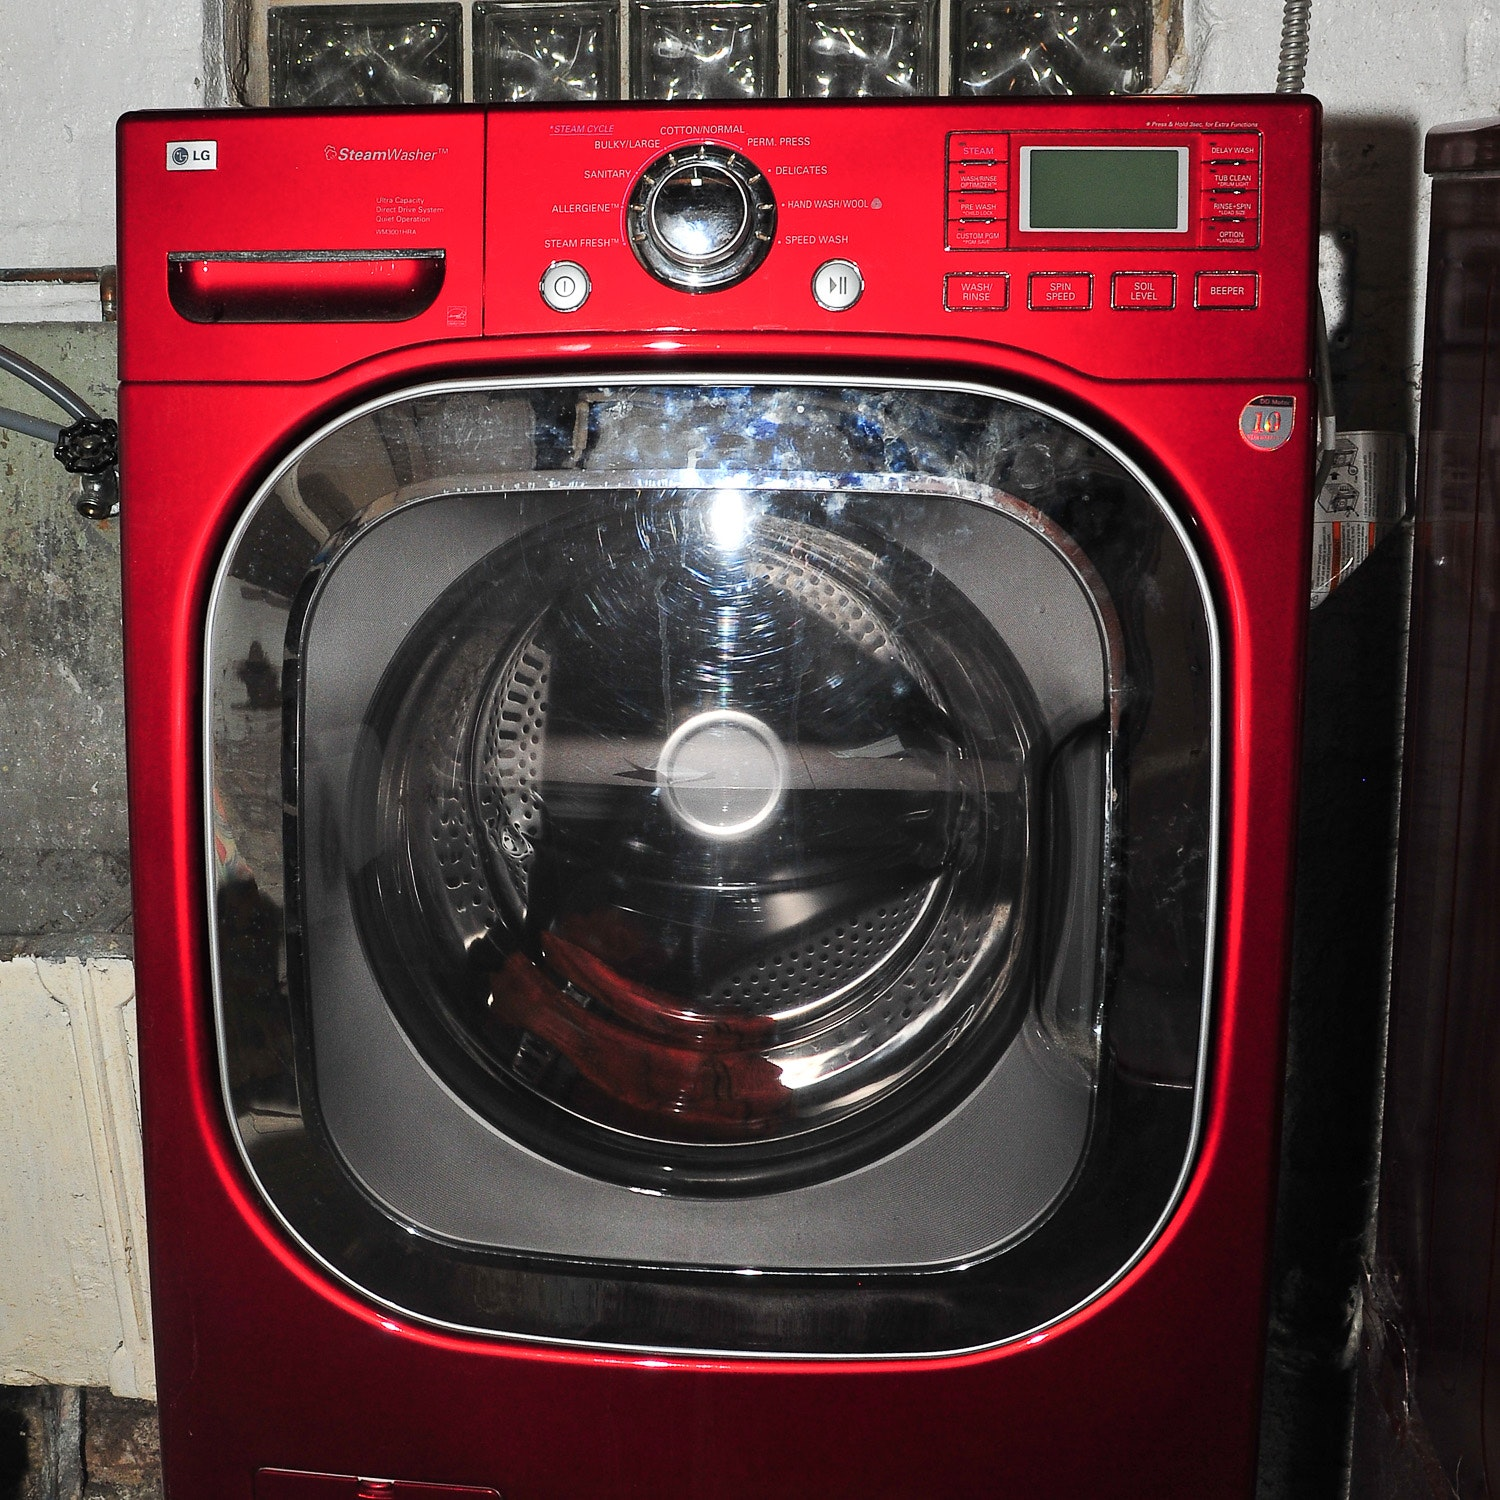 LG Steam Washer in Red